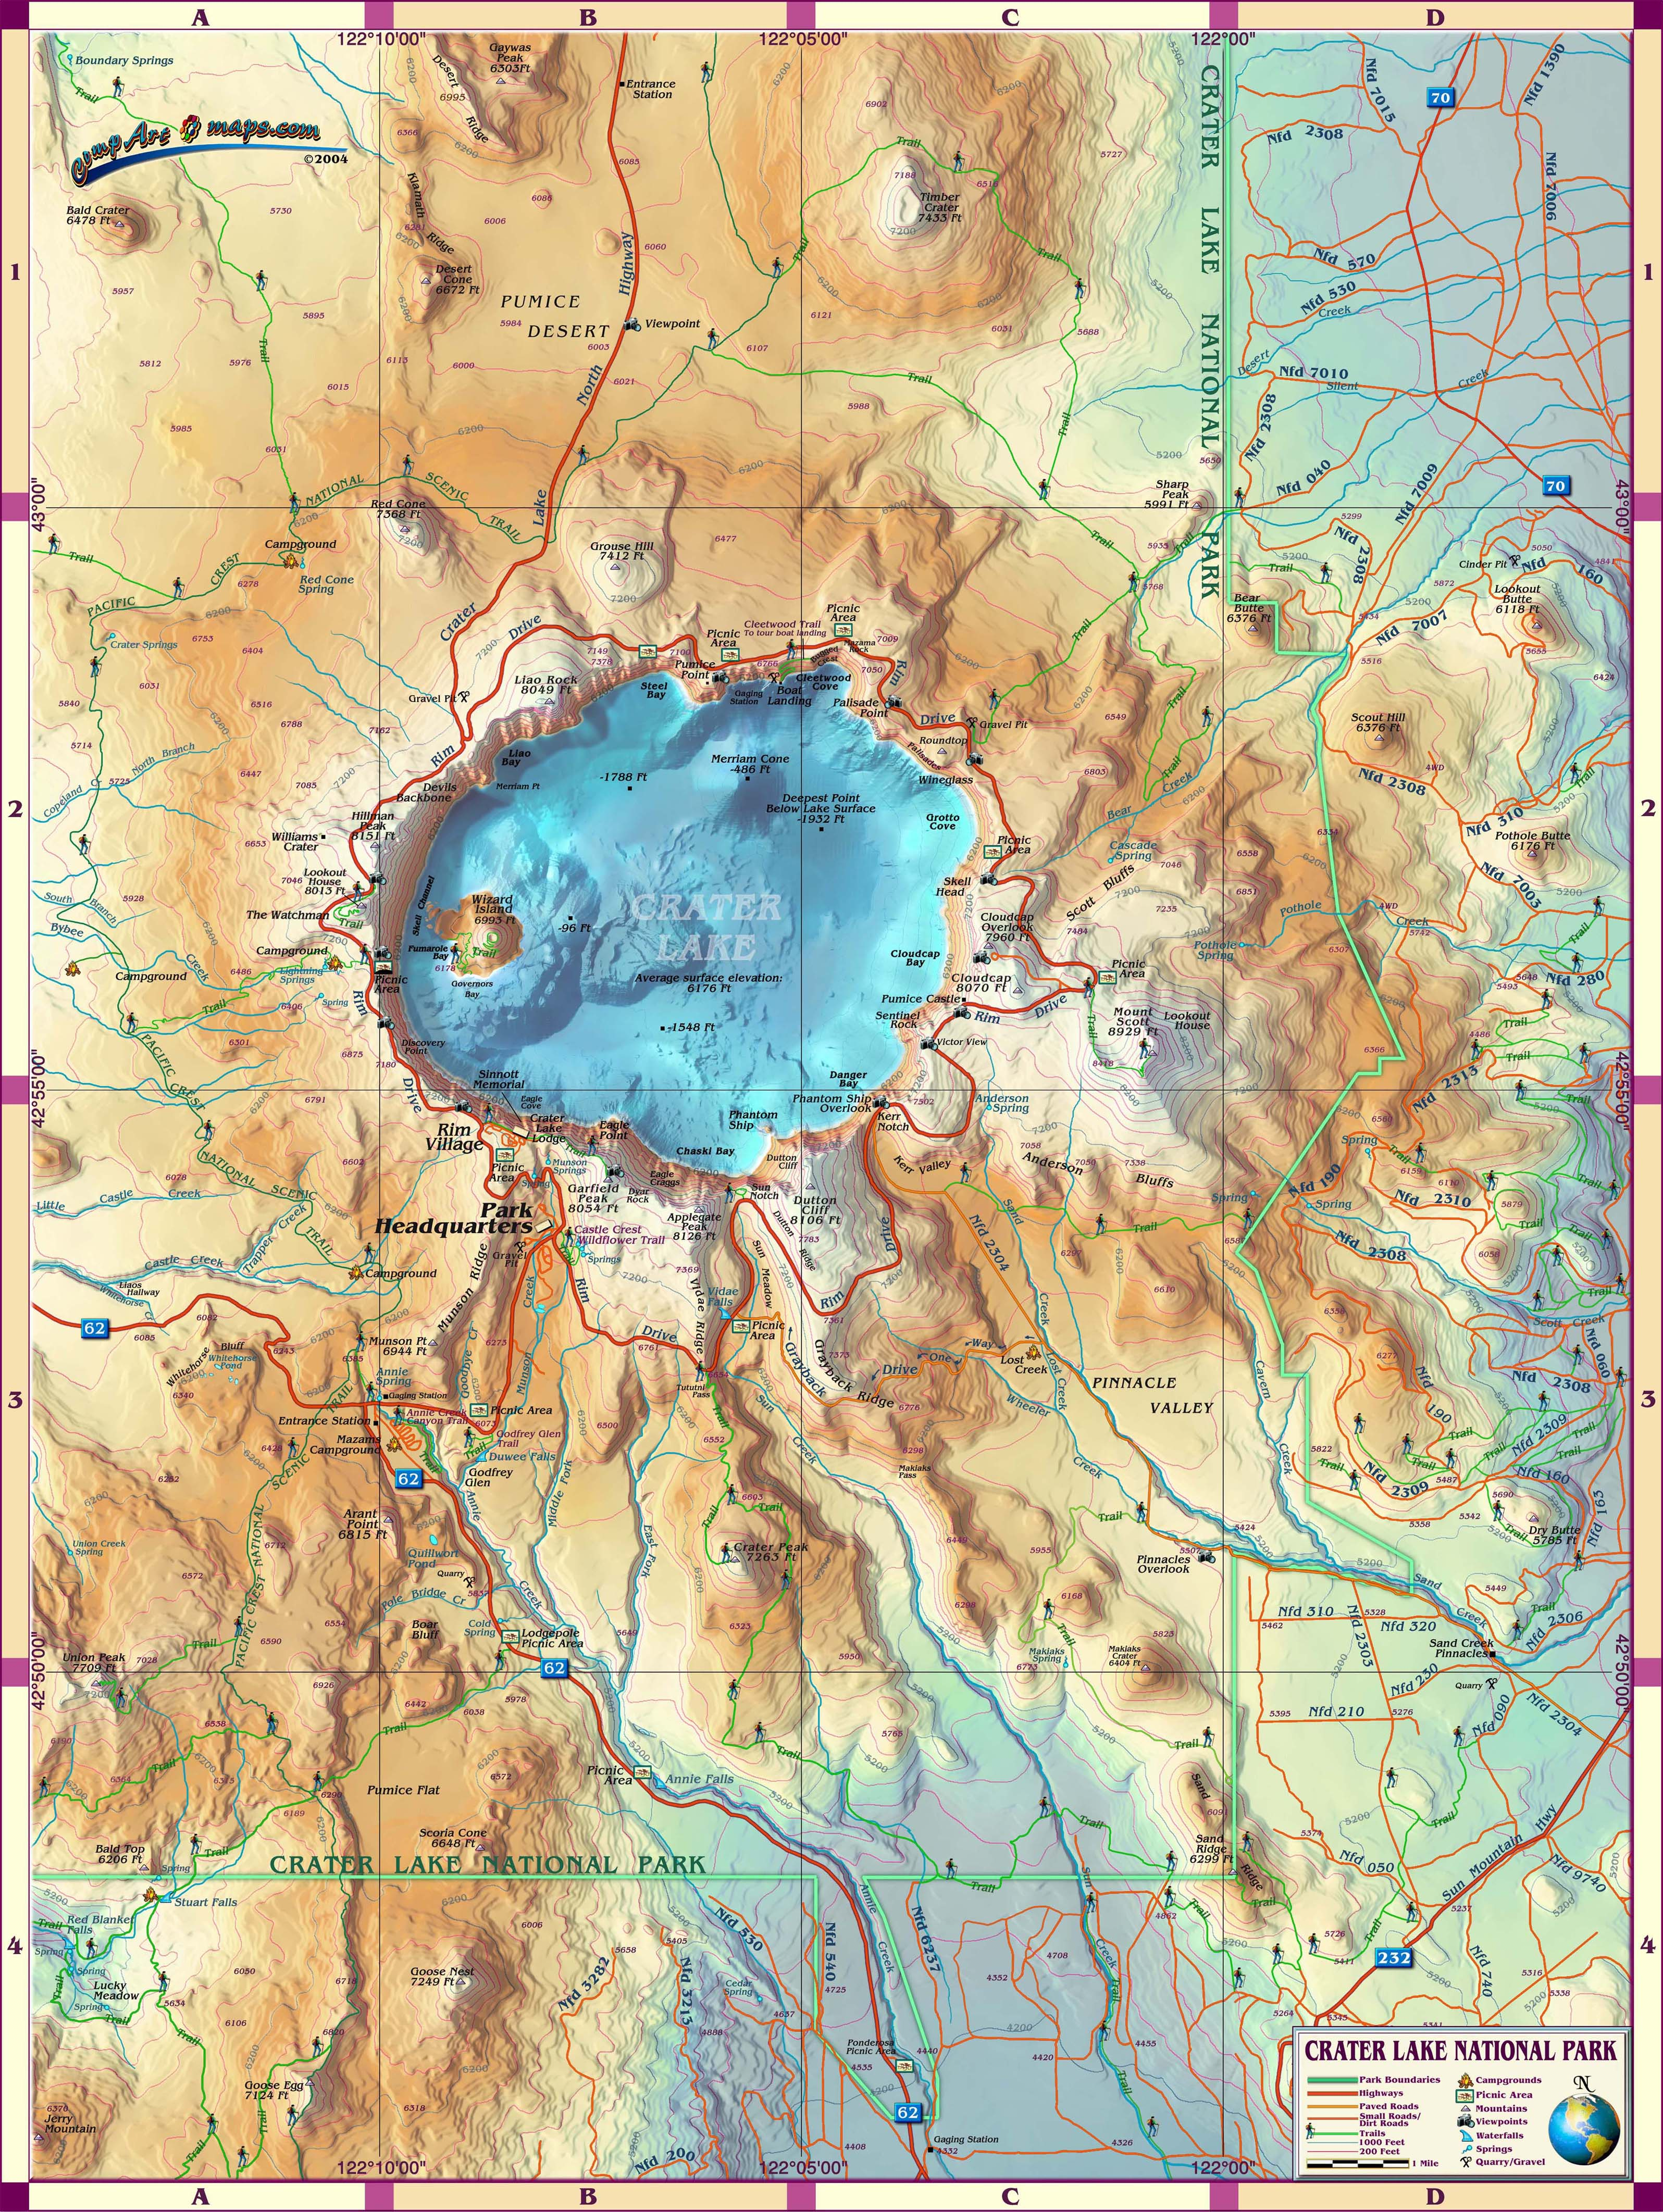 Crater-Lake-National-Park-map.jpg